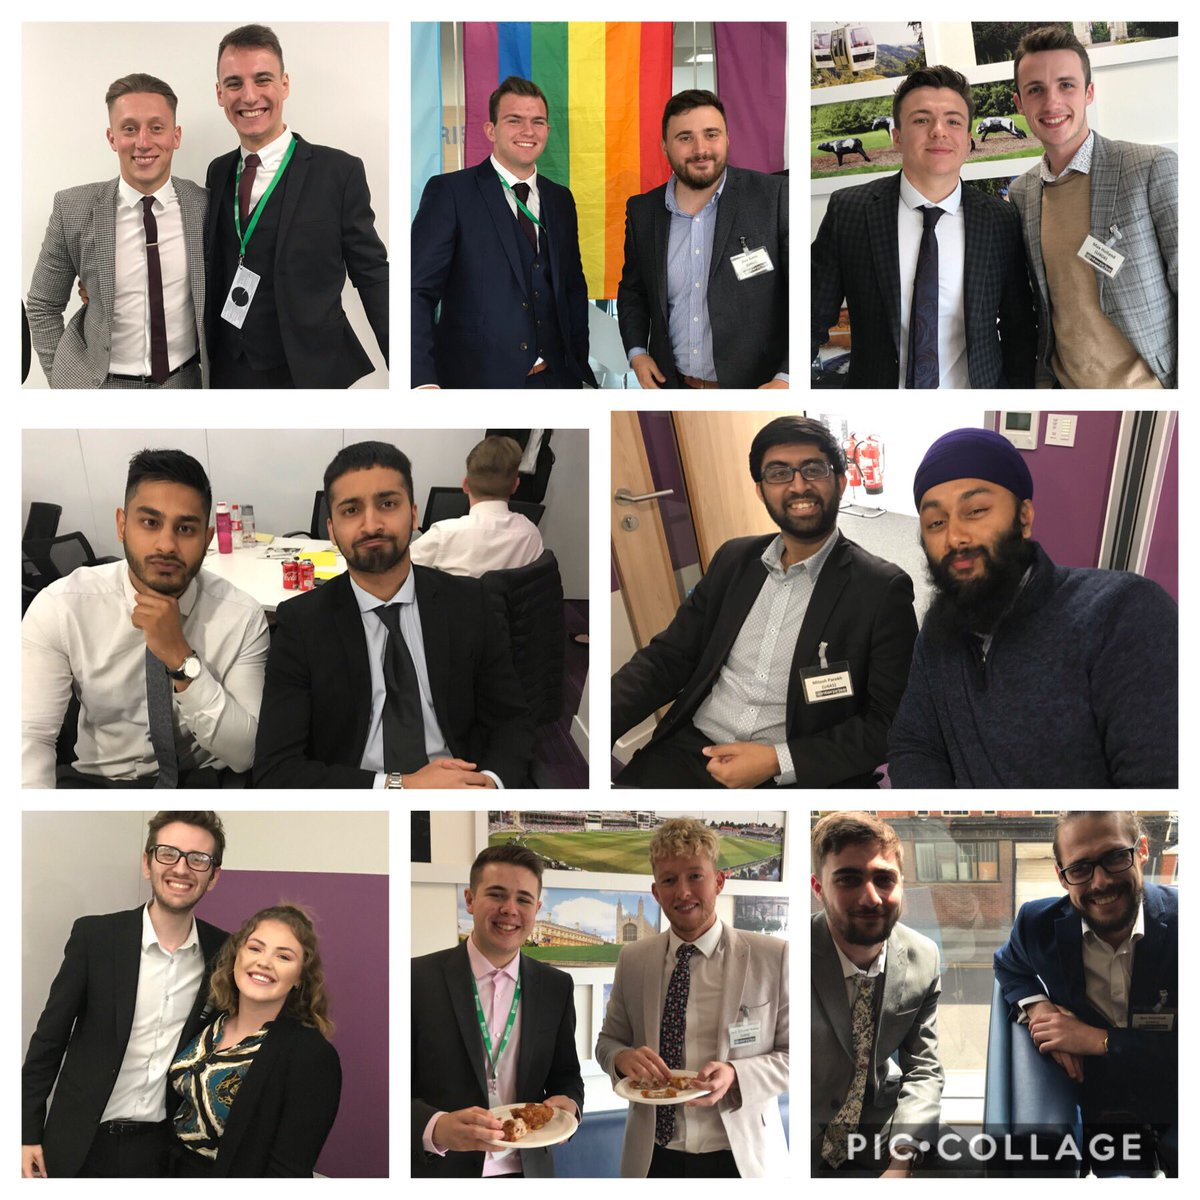 Our New Hire Class had the opportunity to meet their Assistant Managers today at 99. Great onboarding everyone #SU4AM19